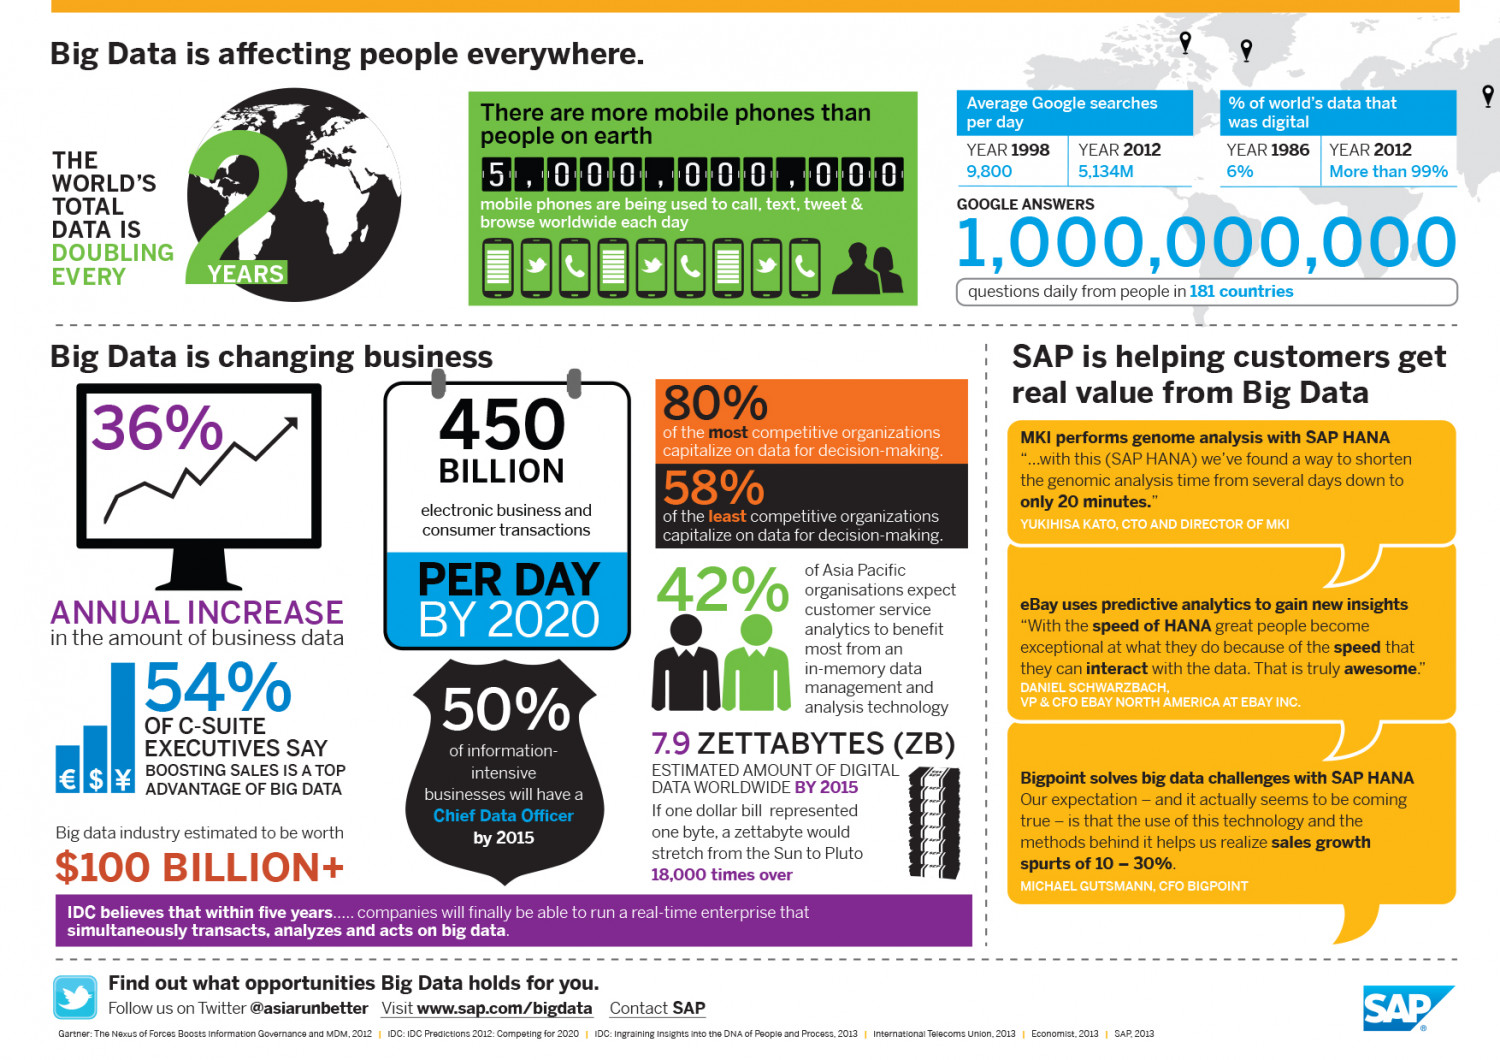 Big Data is affecting people everywhere Infographic